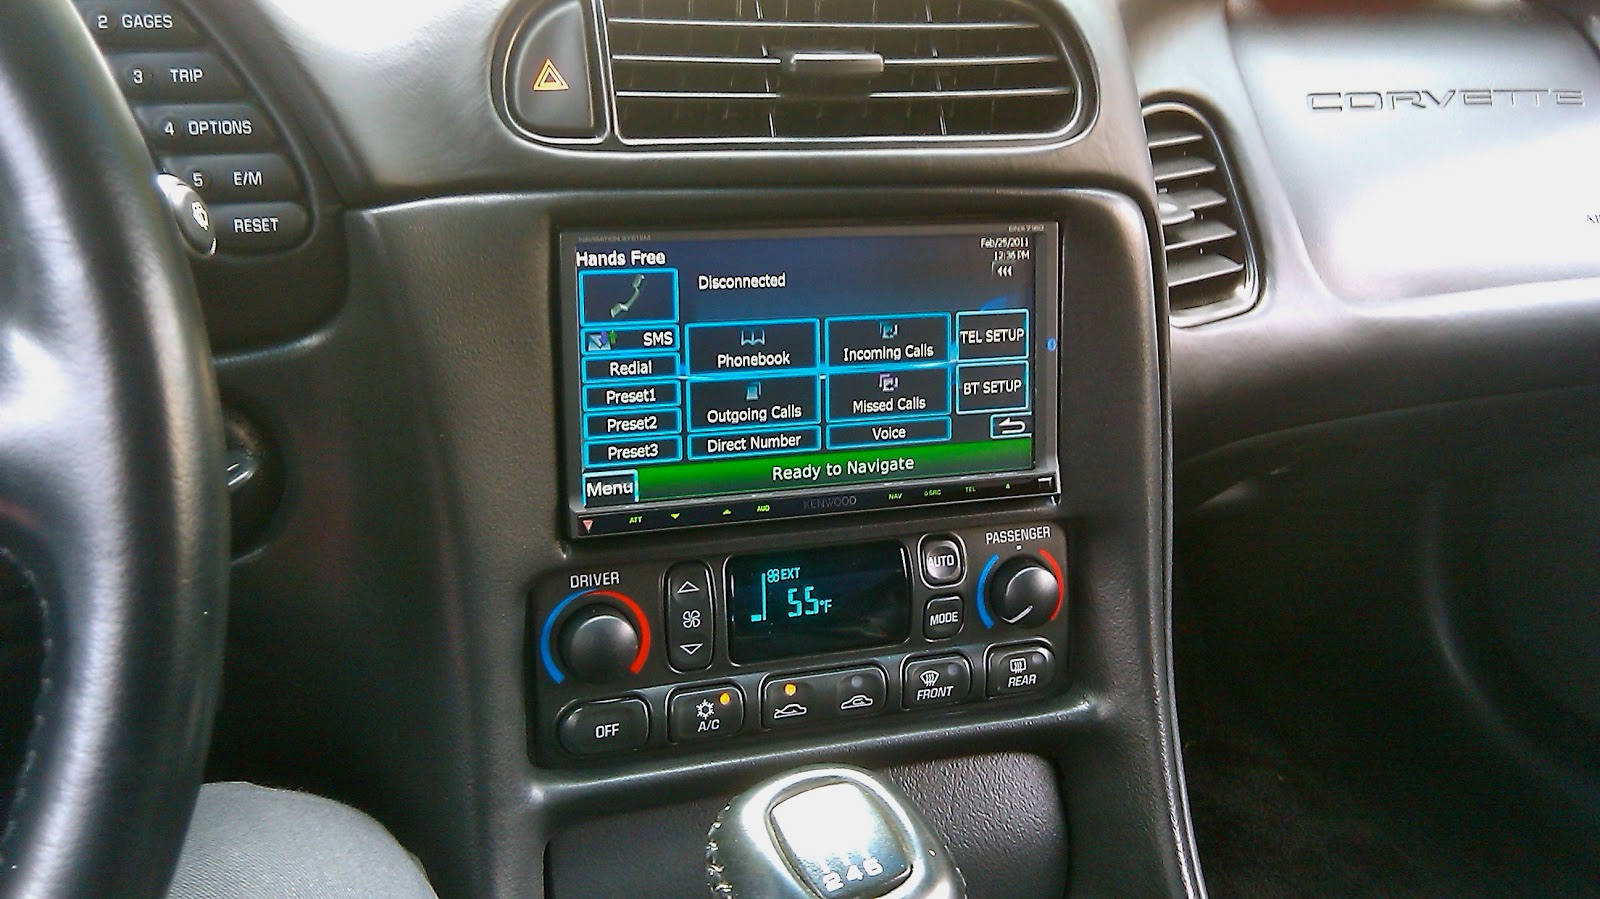 2007 Corvette Radio Wiring Diagram Trusted 2000 Chevy Tahoe Factory 2001 Stereo 38 Images Mercedes 1998